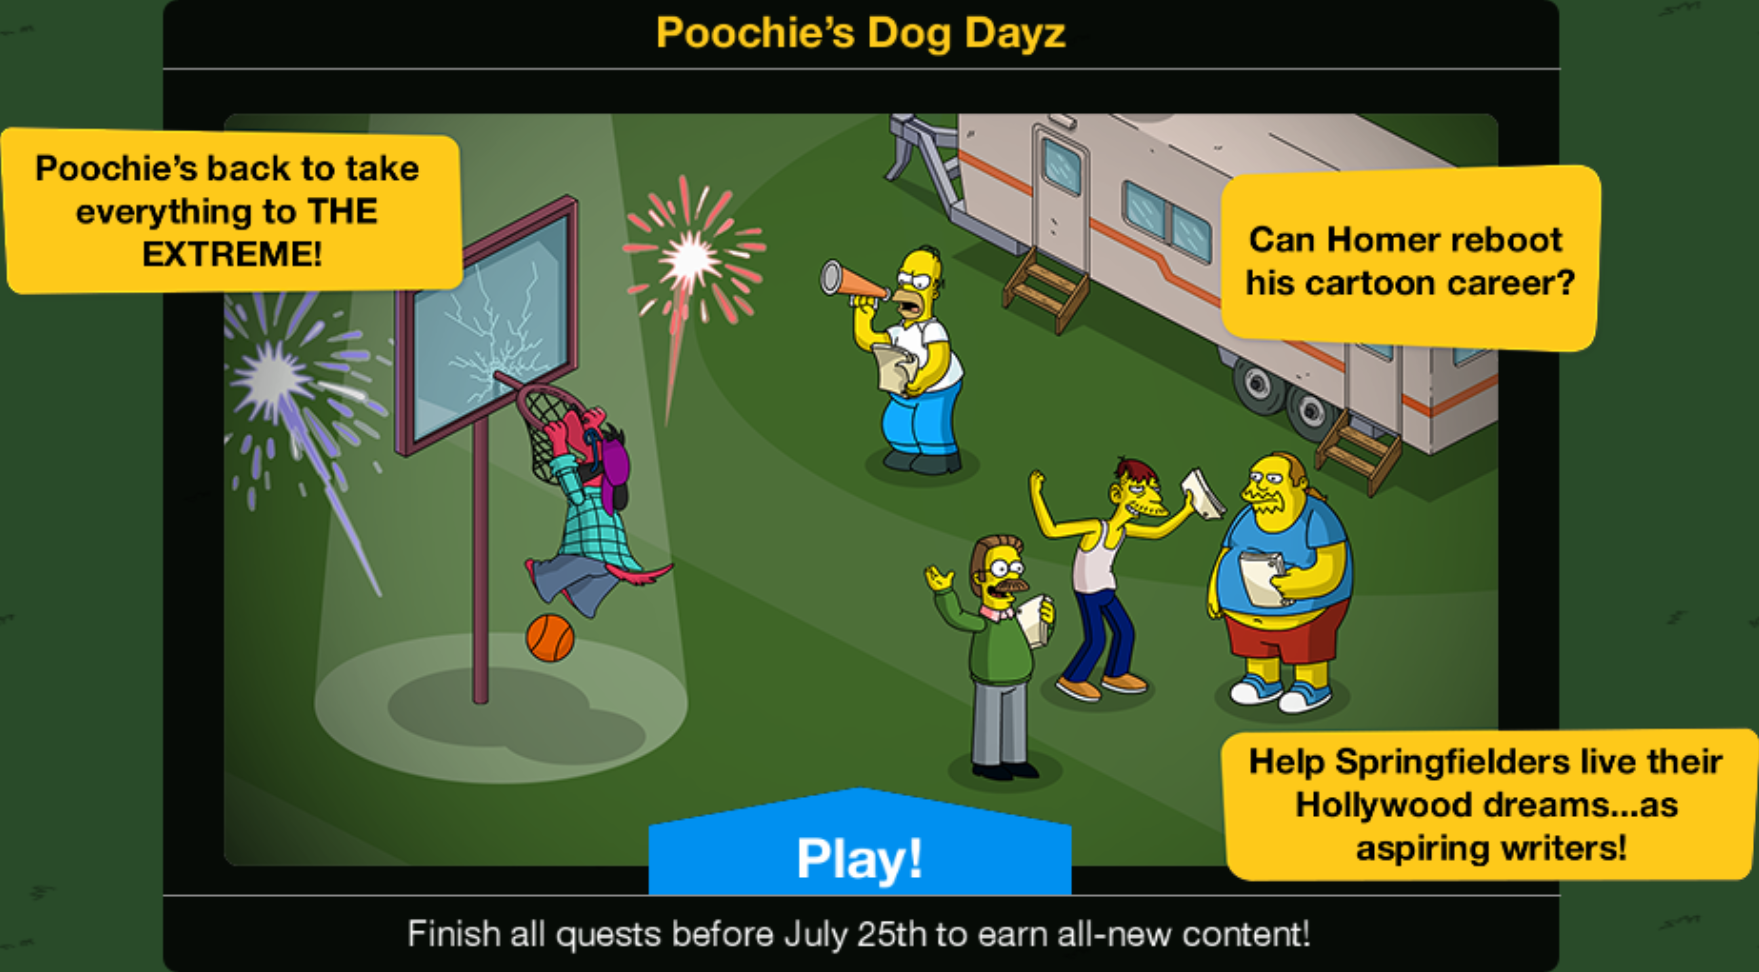 Poochie%27s_Dog_Dayz_Event_Guide.png